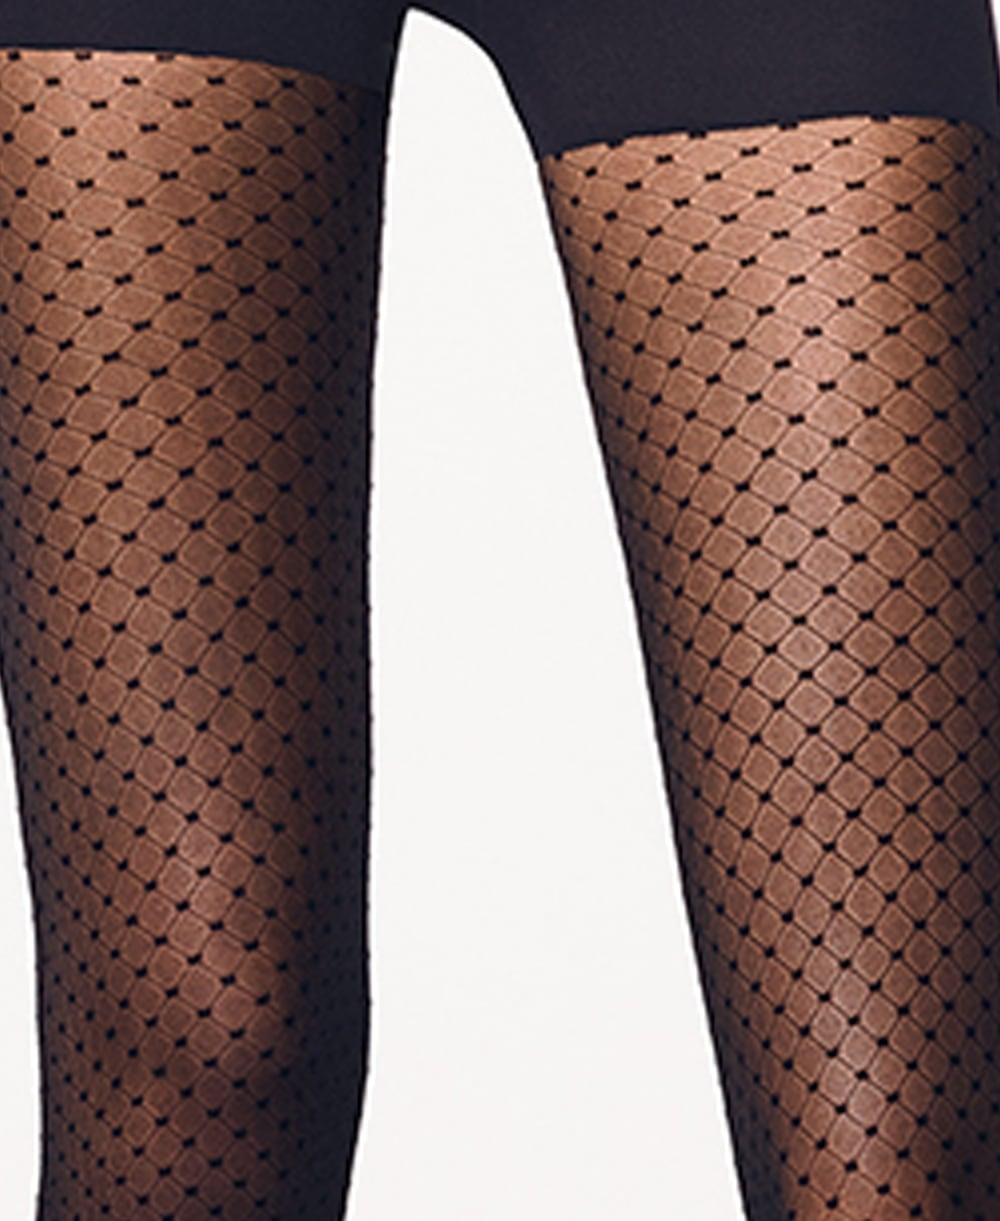 33345ed99 Wolford Dots Control Top Tights - Tights from luxury-legs.com UK